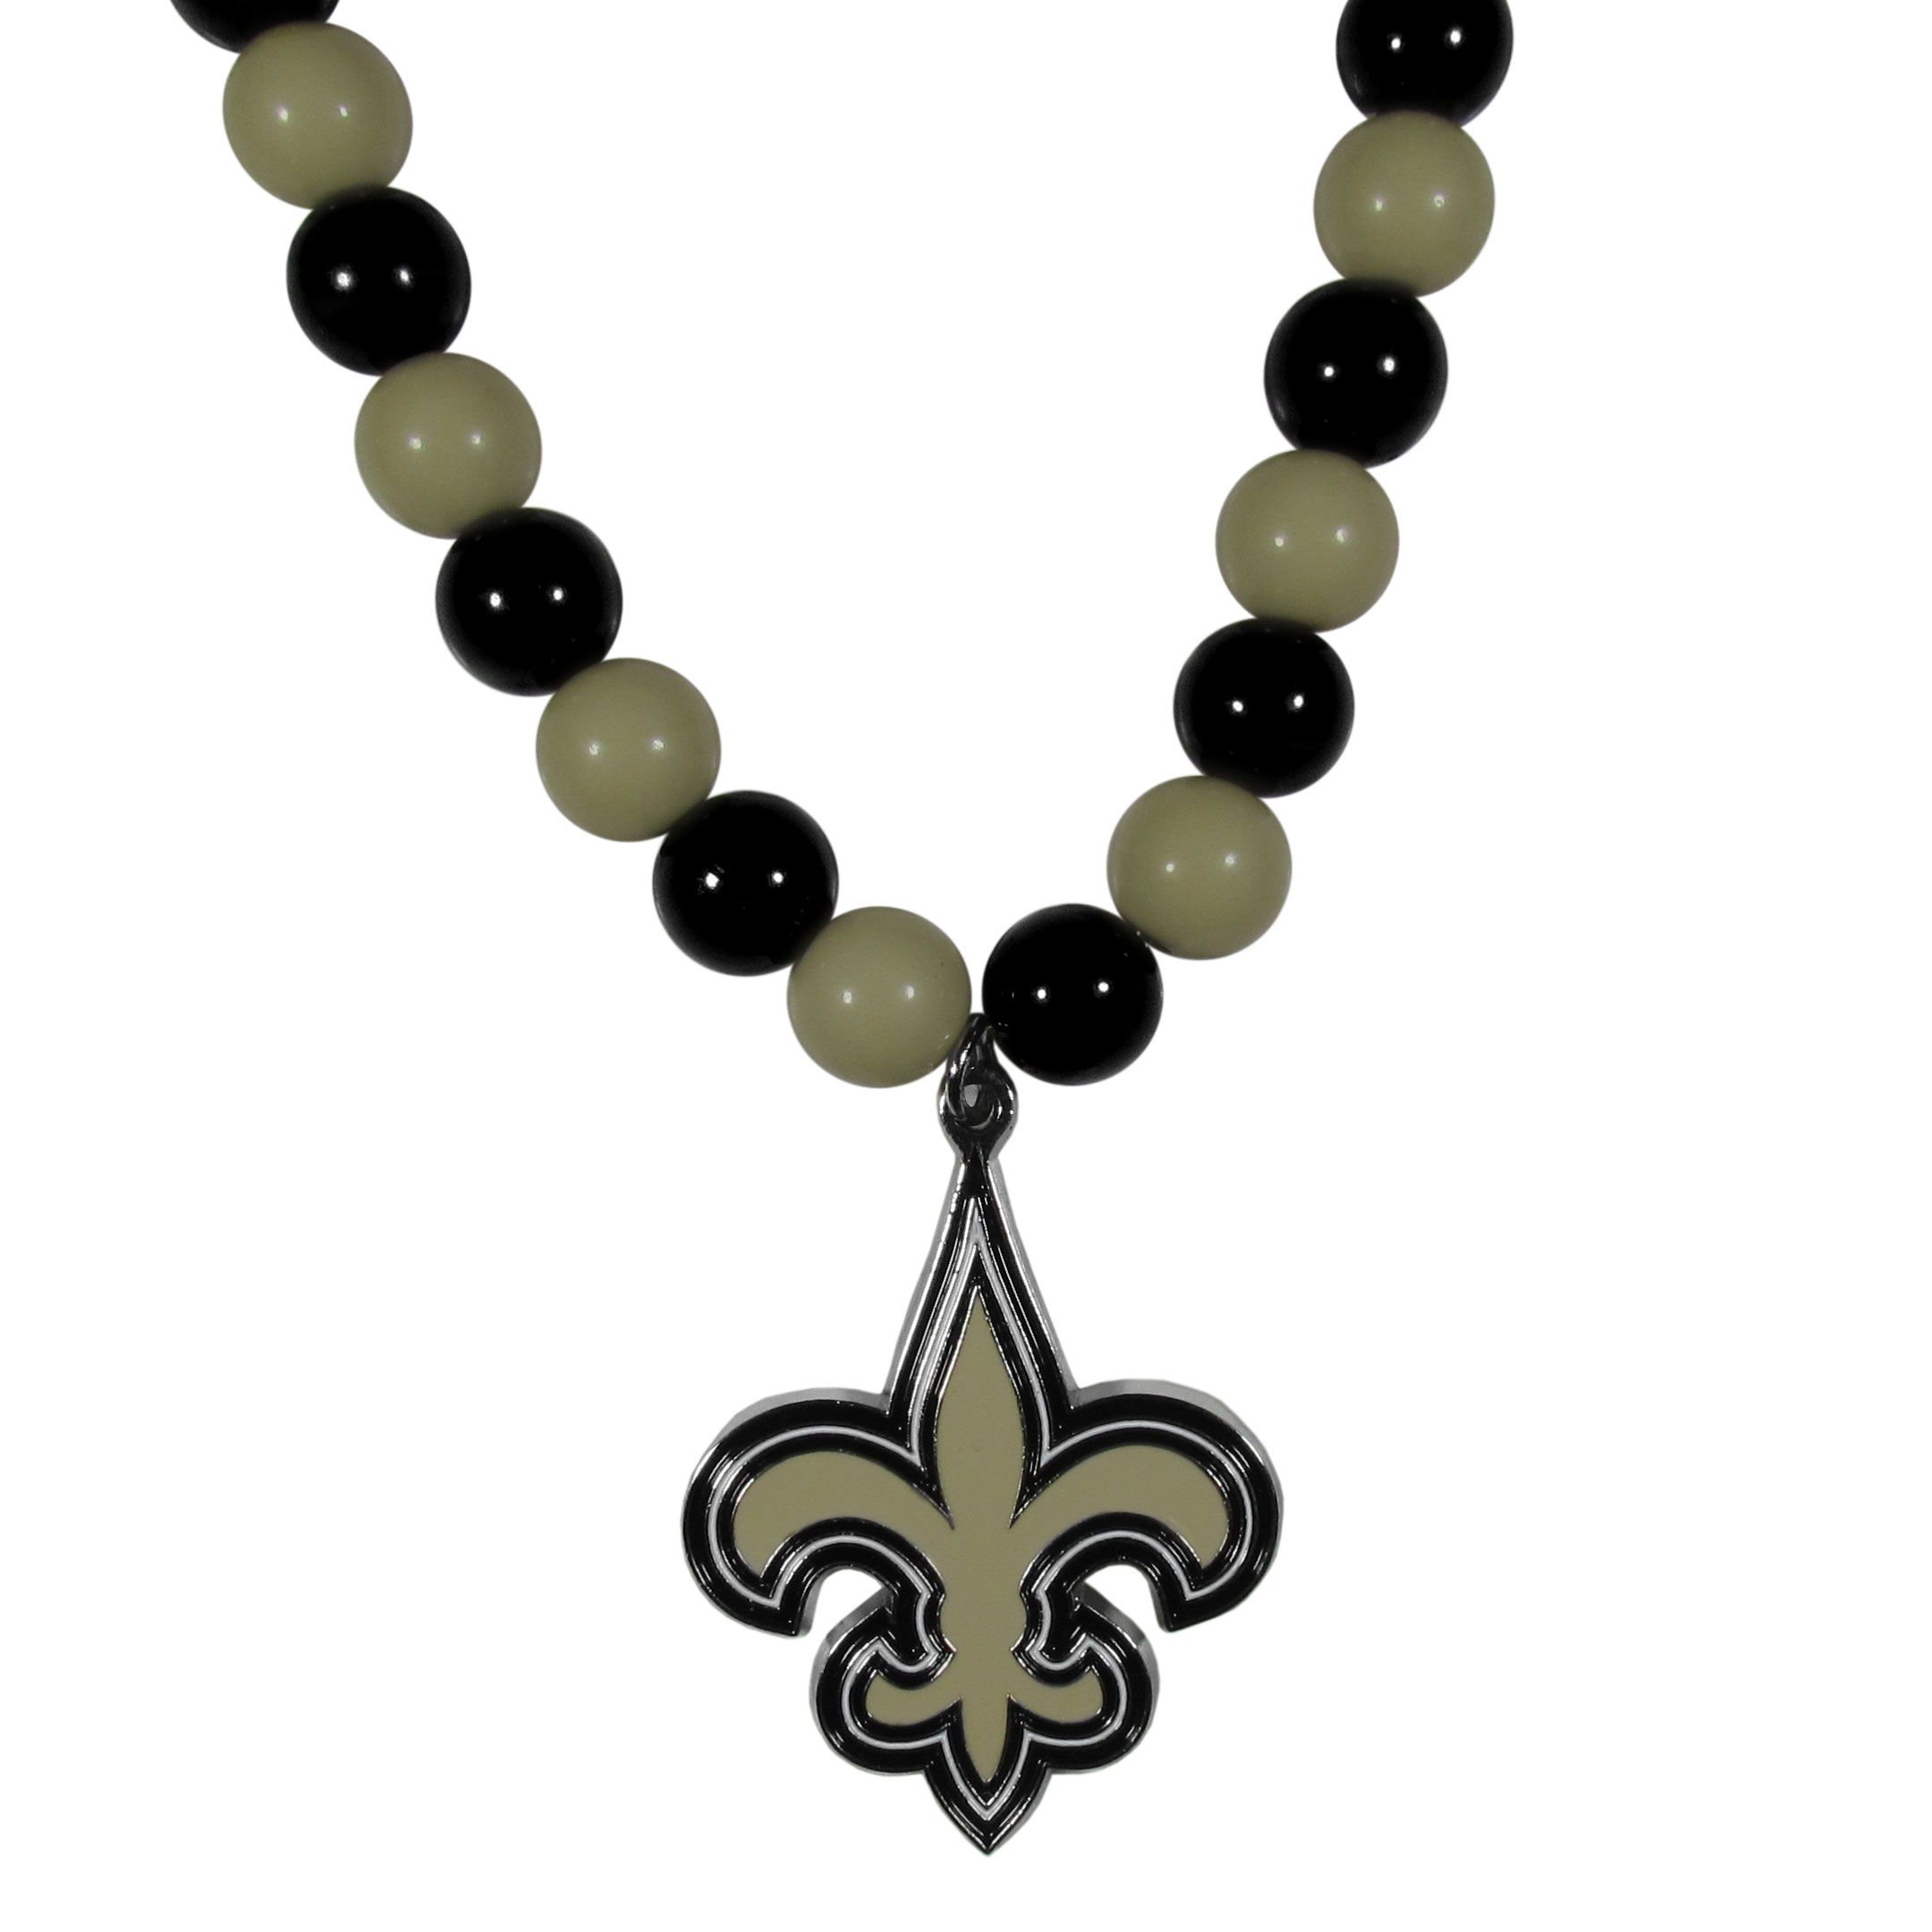 New Orleans Saints Fan Bead Necklace - Make a big statement with our fan bead necklaces! These brightly colored necklace have a 24 inch string of alternating colored beads with an extra large, high-polish New Orleans Saints pendant.